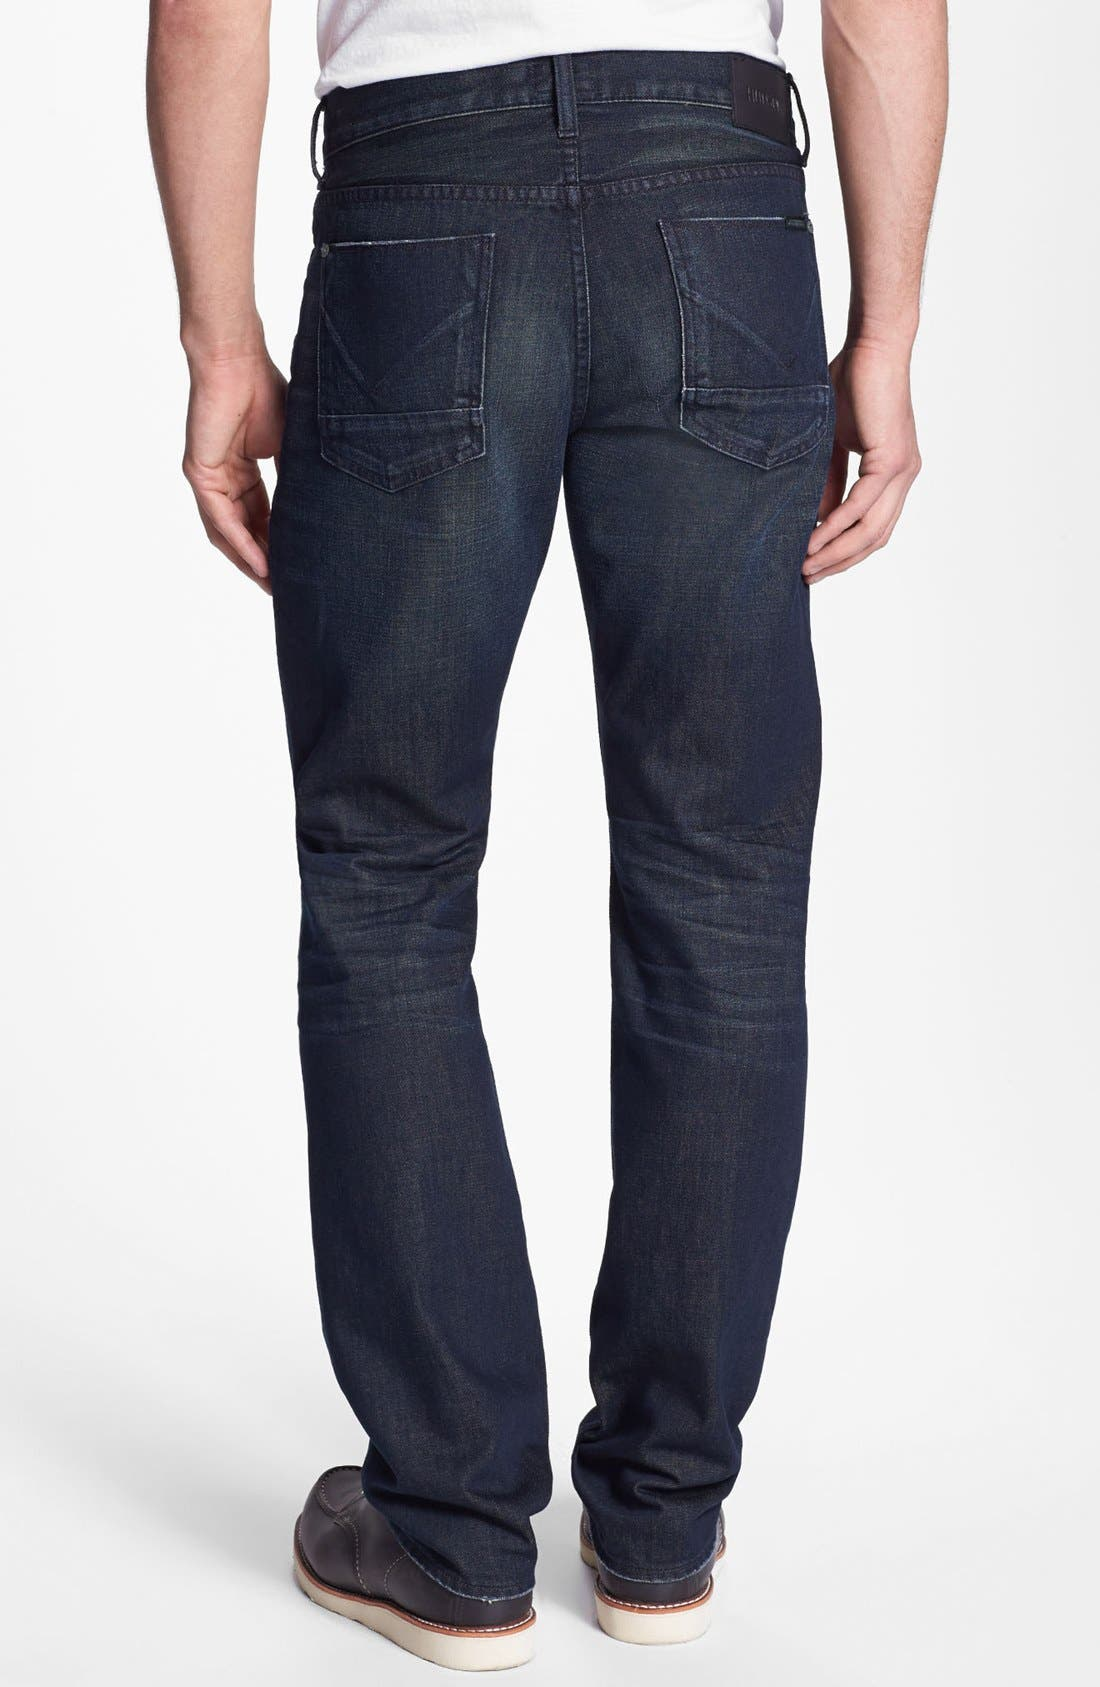 Alternate Image 1 Selected - Hudson Jeans 'Byron' Straight Leg Jeans (Pyle)